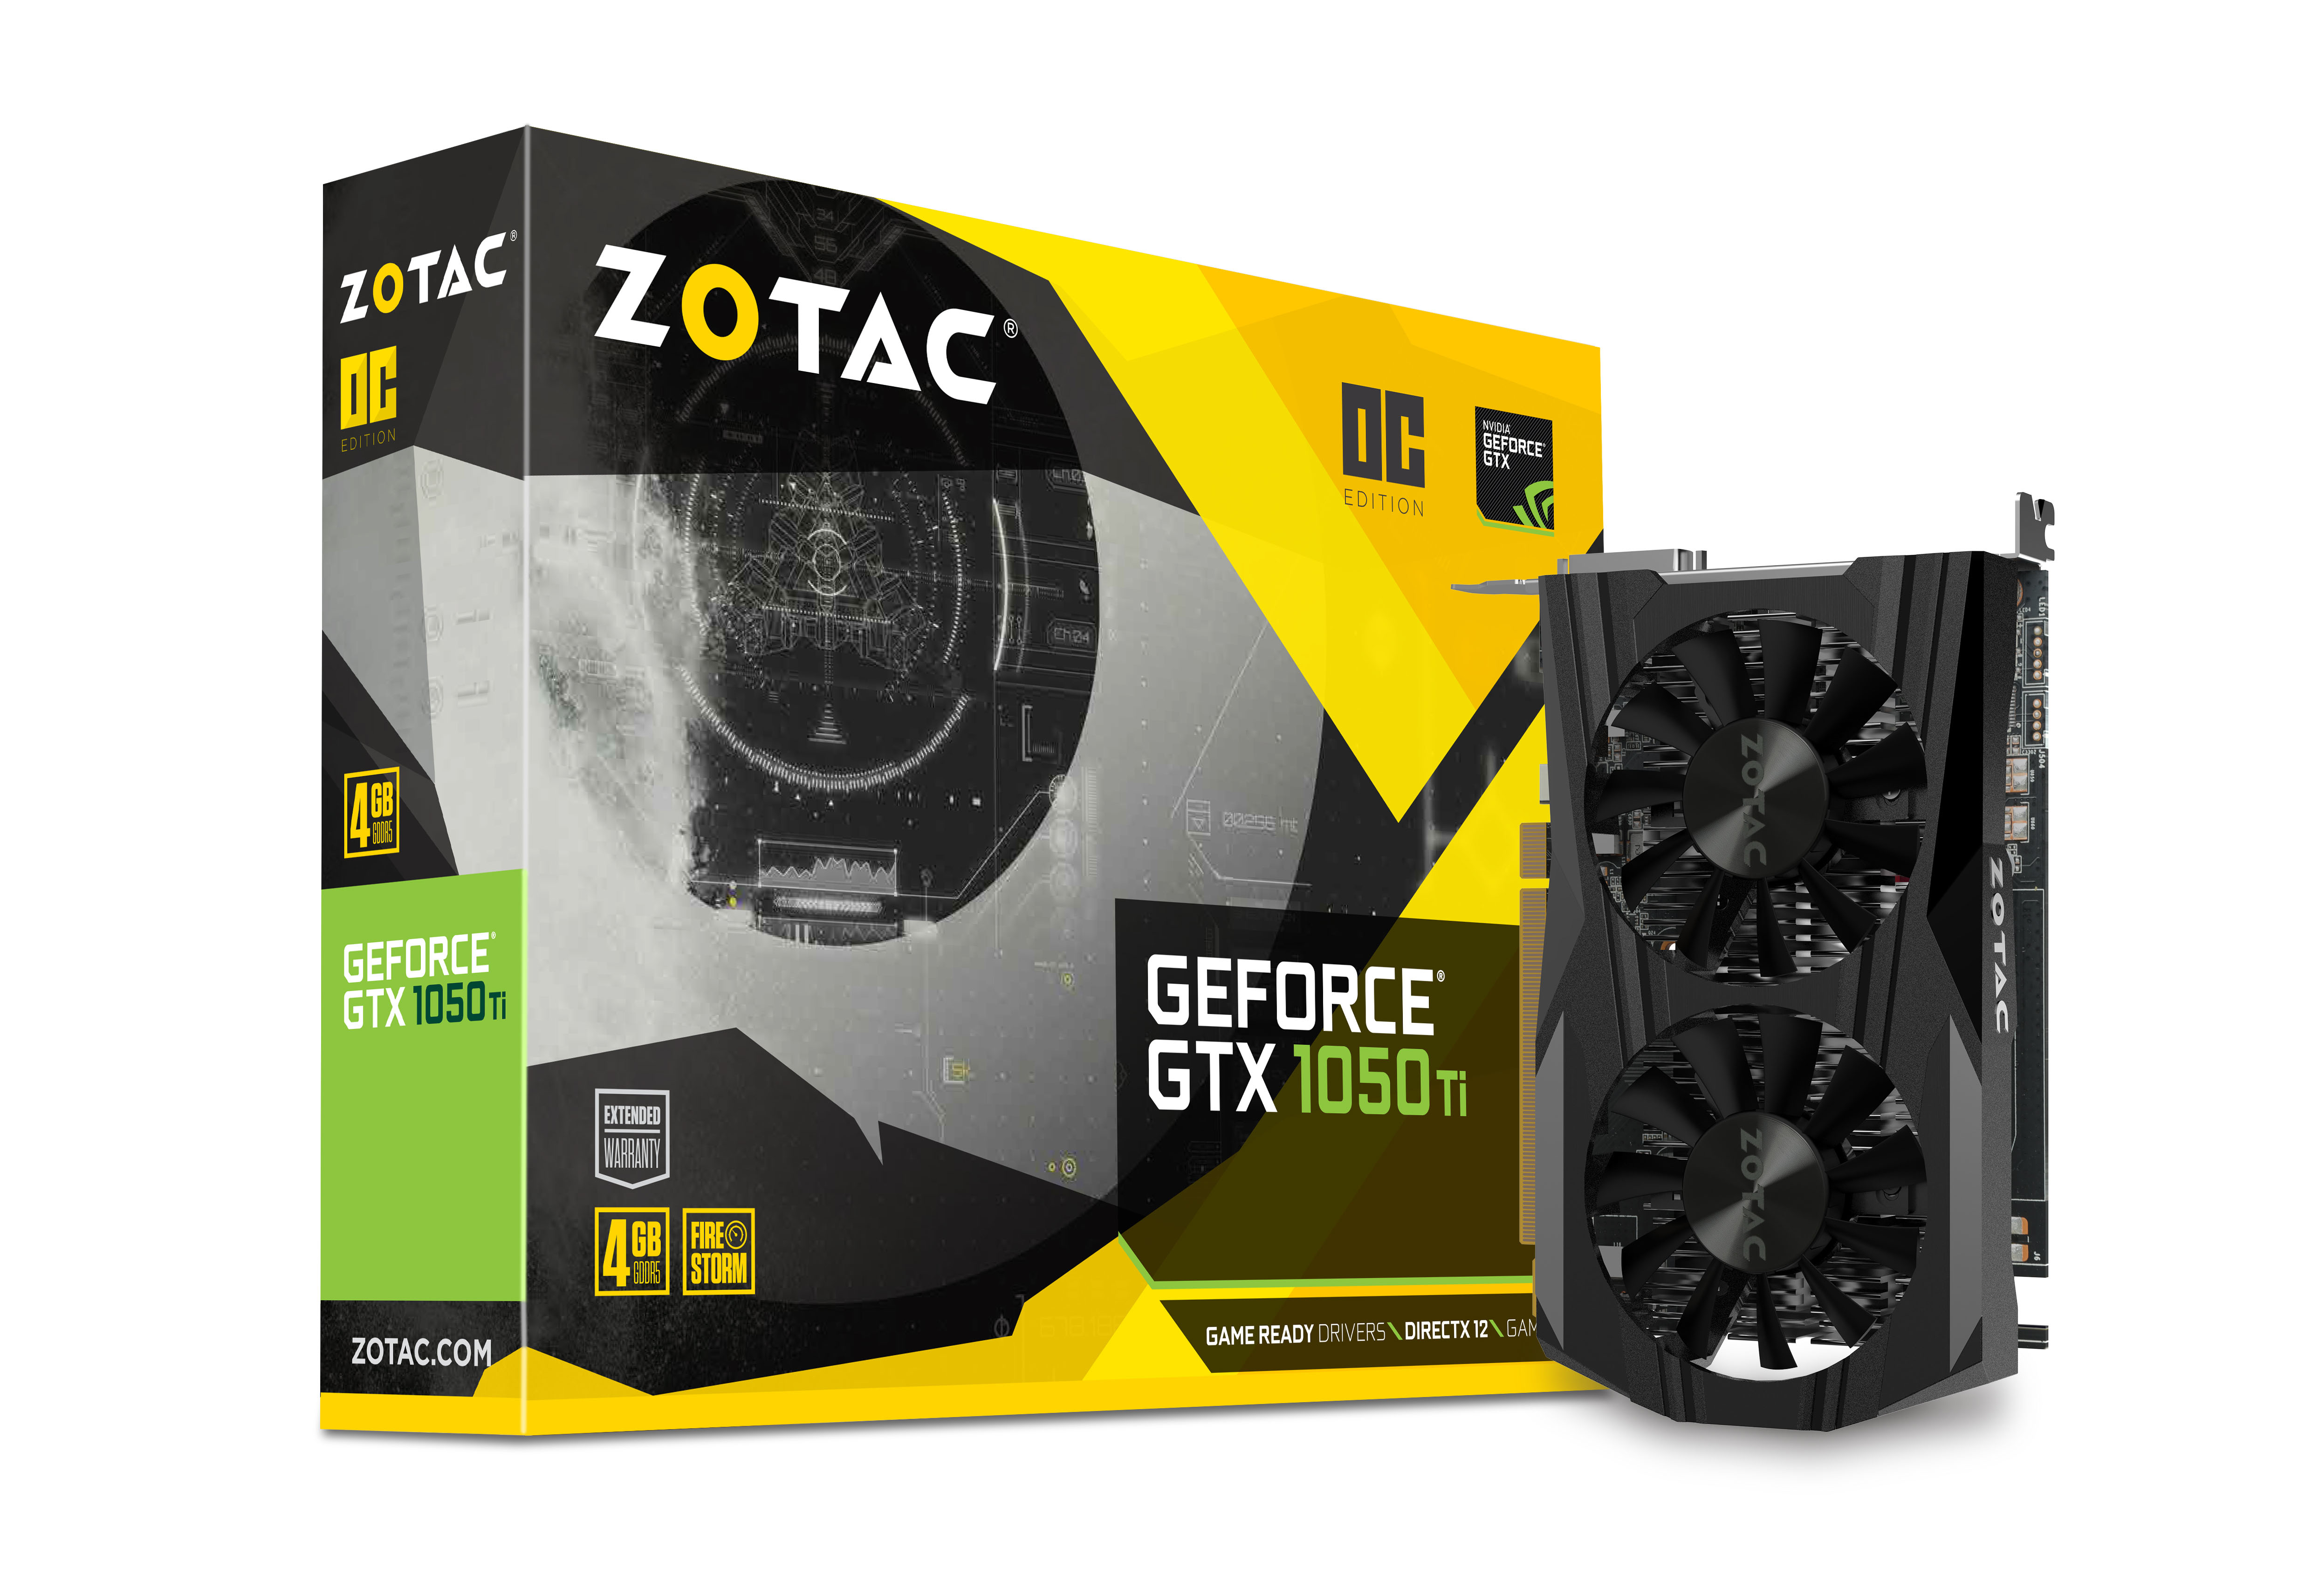 Zotac Geforce Gtx 1050 Ti Oc Edition Download The Completepackage Including Schematicfirmware Software